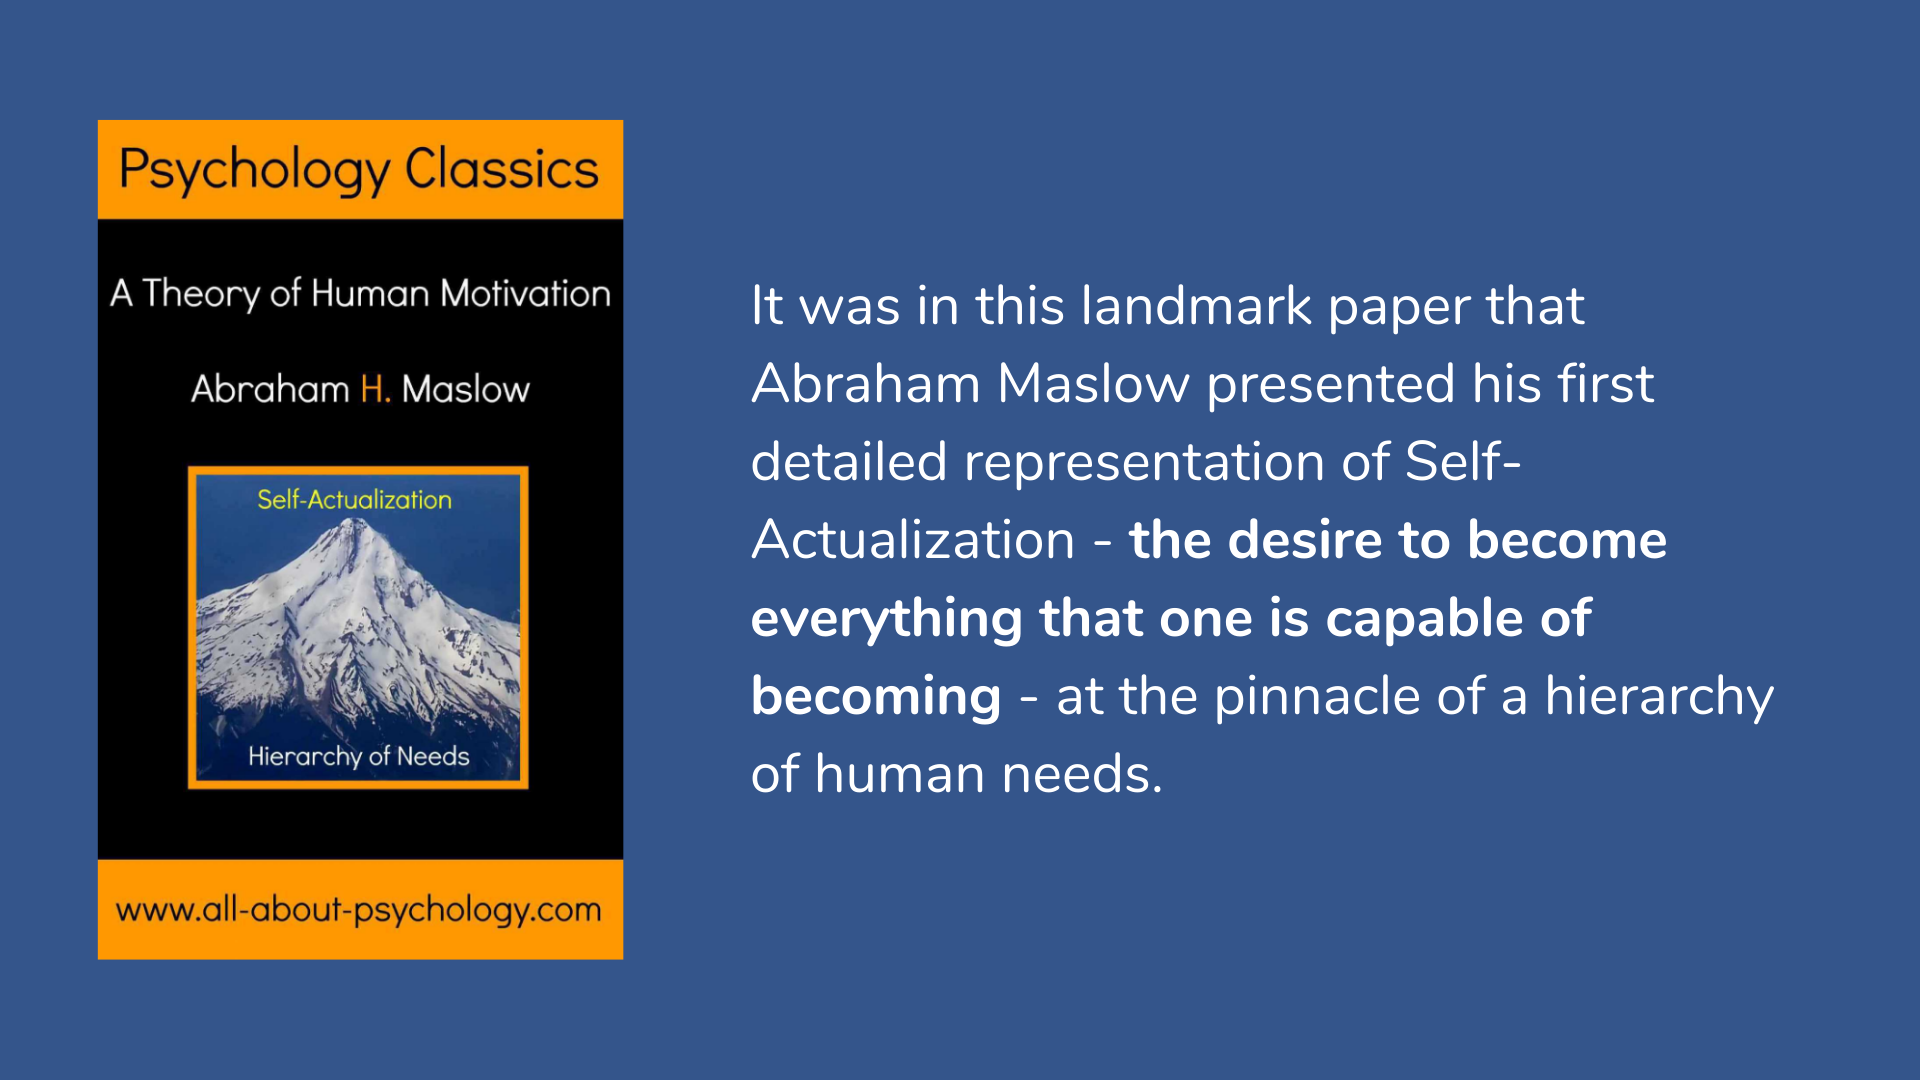 Hierarchy of Needs: A Theory of Human Motivation by Abraham Maslow Book Cover and Description